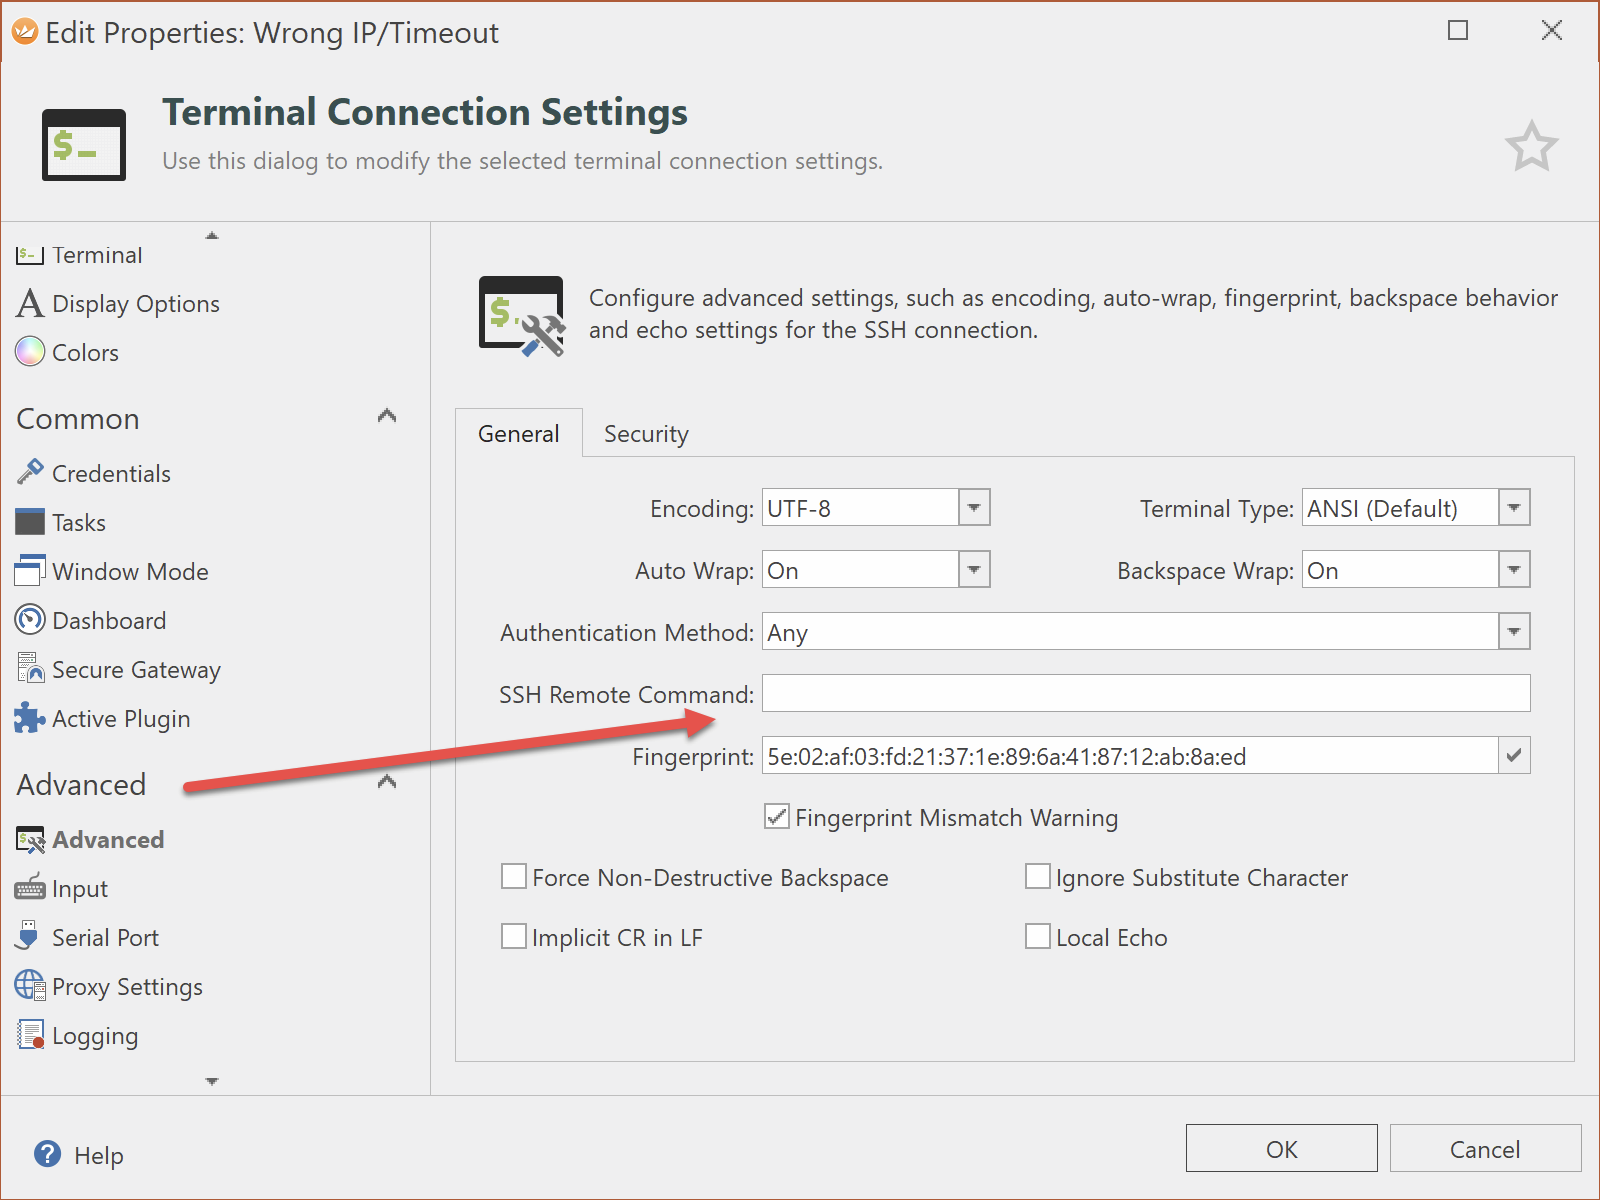 How to add SSH connection with jump box using -J option